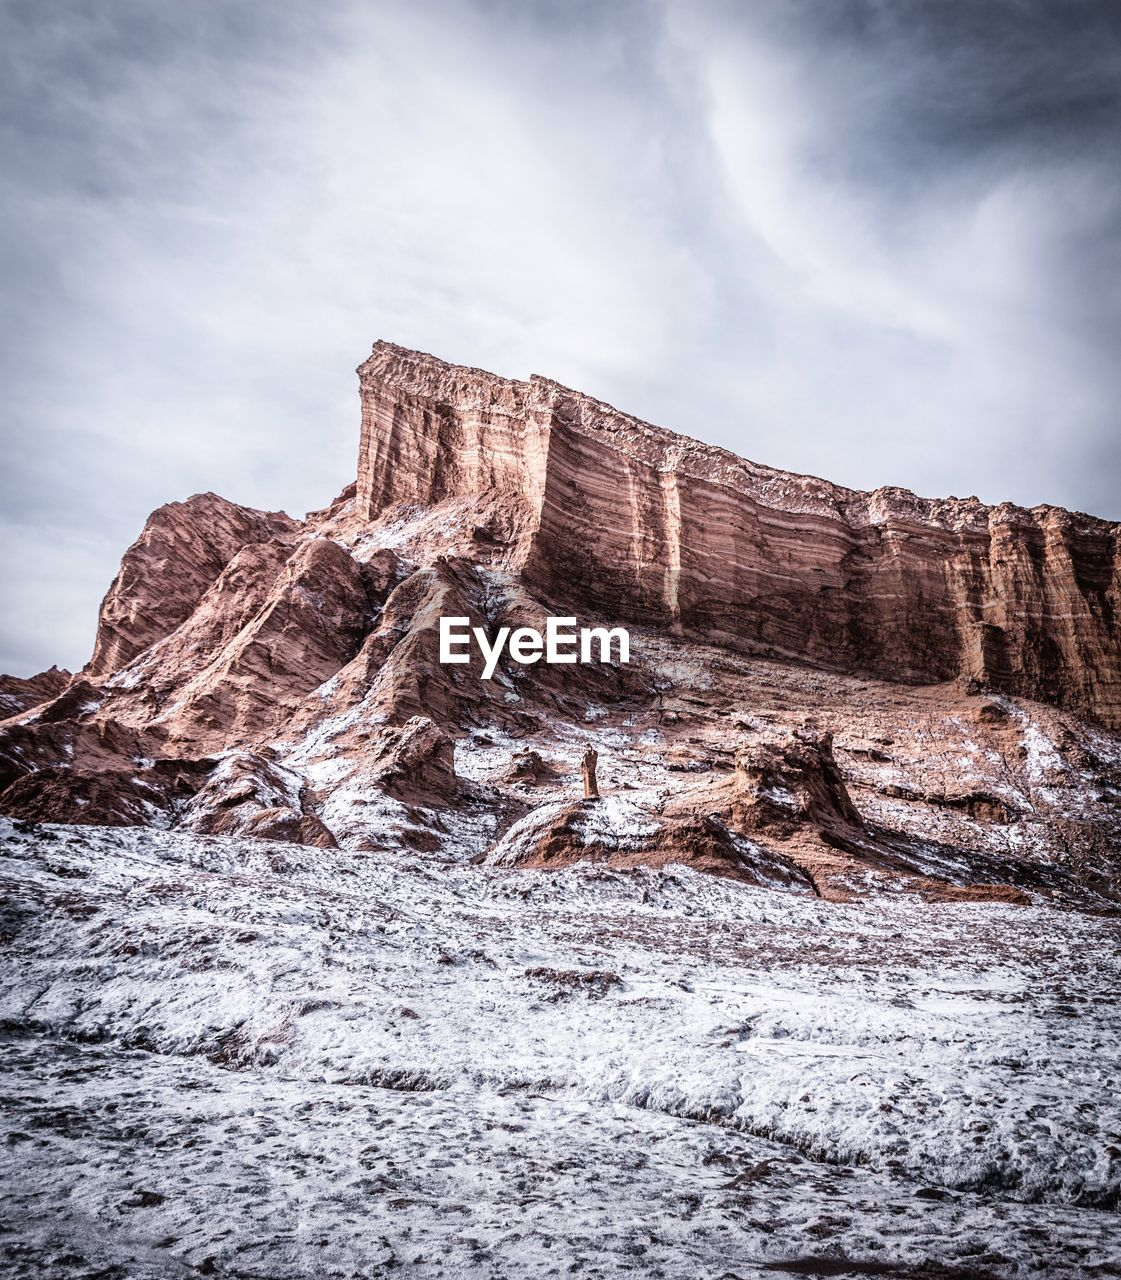 sky, cloud - sky, beauty in nature, scenics - nature, nature, rock, tranquil scene, tranquility, no people, non-urban scene, day, rock formation, mountain, rock - object, environment, cold temperature, winter, land, idyllic, outdoors, formation, eroded